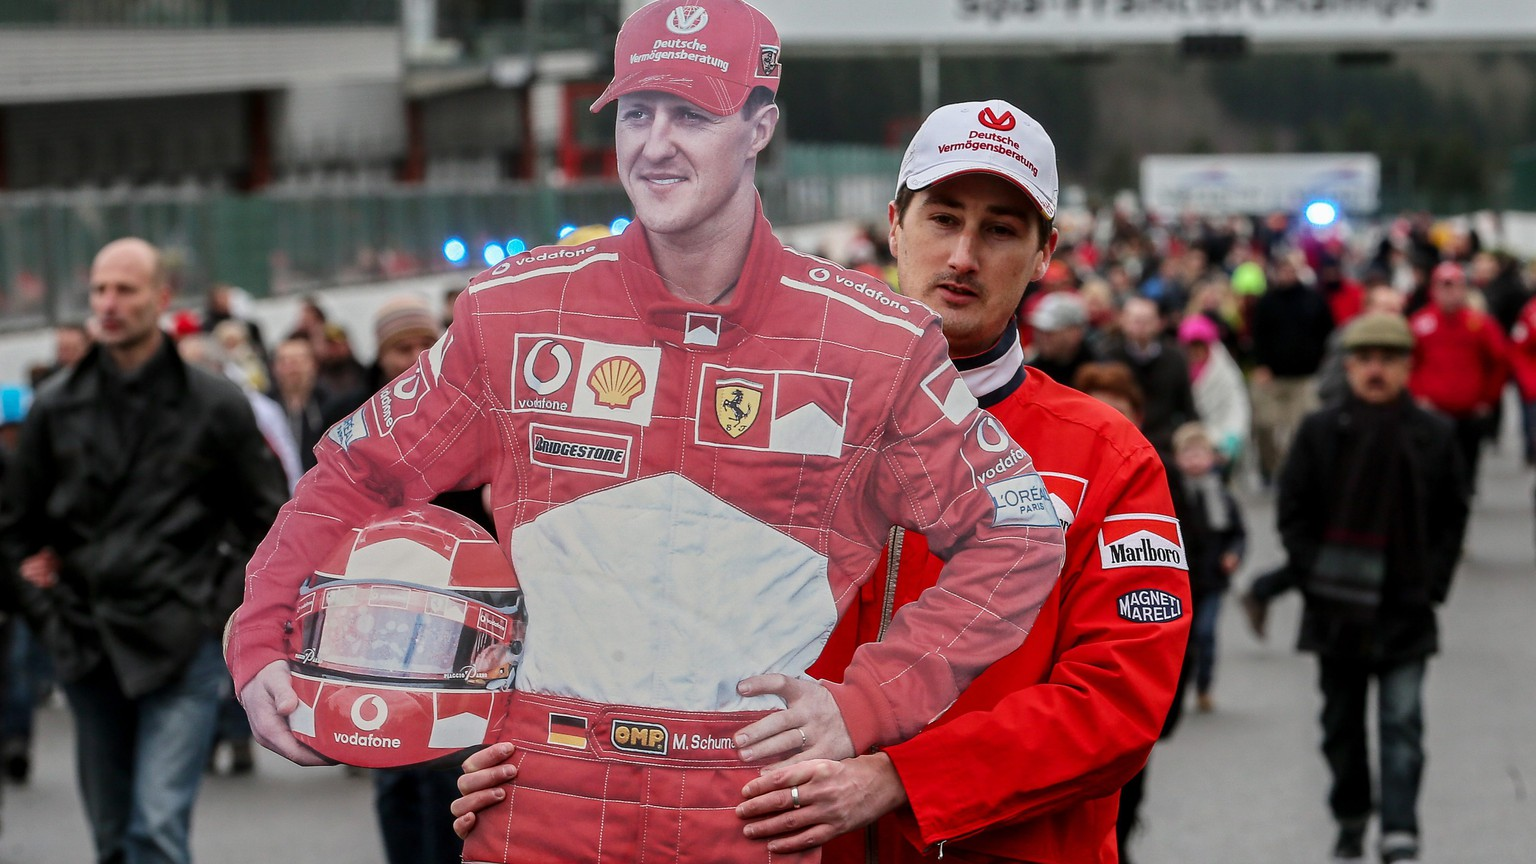 epa04042757 A fan of German Formula One legend Michael Schumacher carries a life-size cardbord cutout of his idol on the Spa Fancorchamp racetrack, Belgium, 26 January 2014. Thousands of fans coming from Belgium, Germany, France and the Netherlands gathered on the race course in Spa where Schumacher won his first Formula One race in 1992. The 45-year-old seven-time Formula One world champion has been in a medically induced coma in a Grenoble hospital since a skiing accident in France. Schumacher's condition after two operations is described by doctors as critical but stable.  EPA/OLIVIER HOSLET